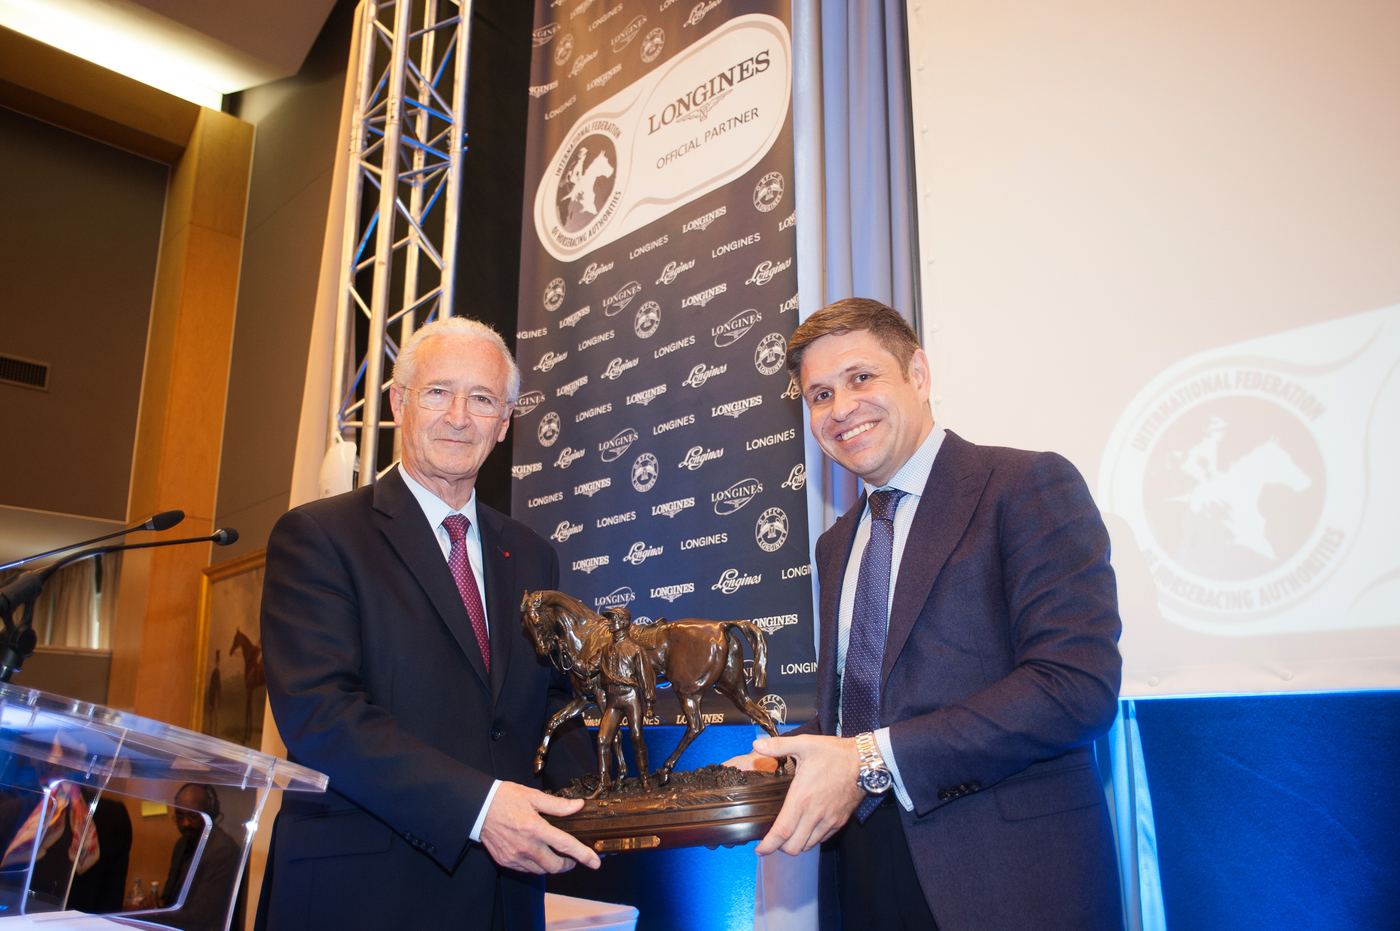 Longines Flat Racing Event: Longines announces the creation of the Longines World's Best Horse Race award and the extension of its partnership with the IFHA  1